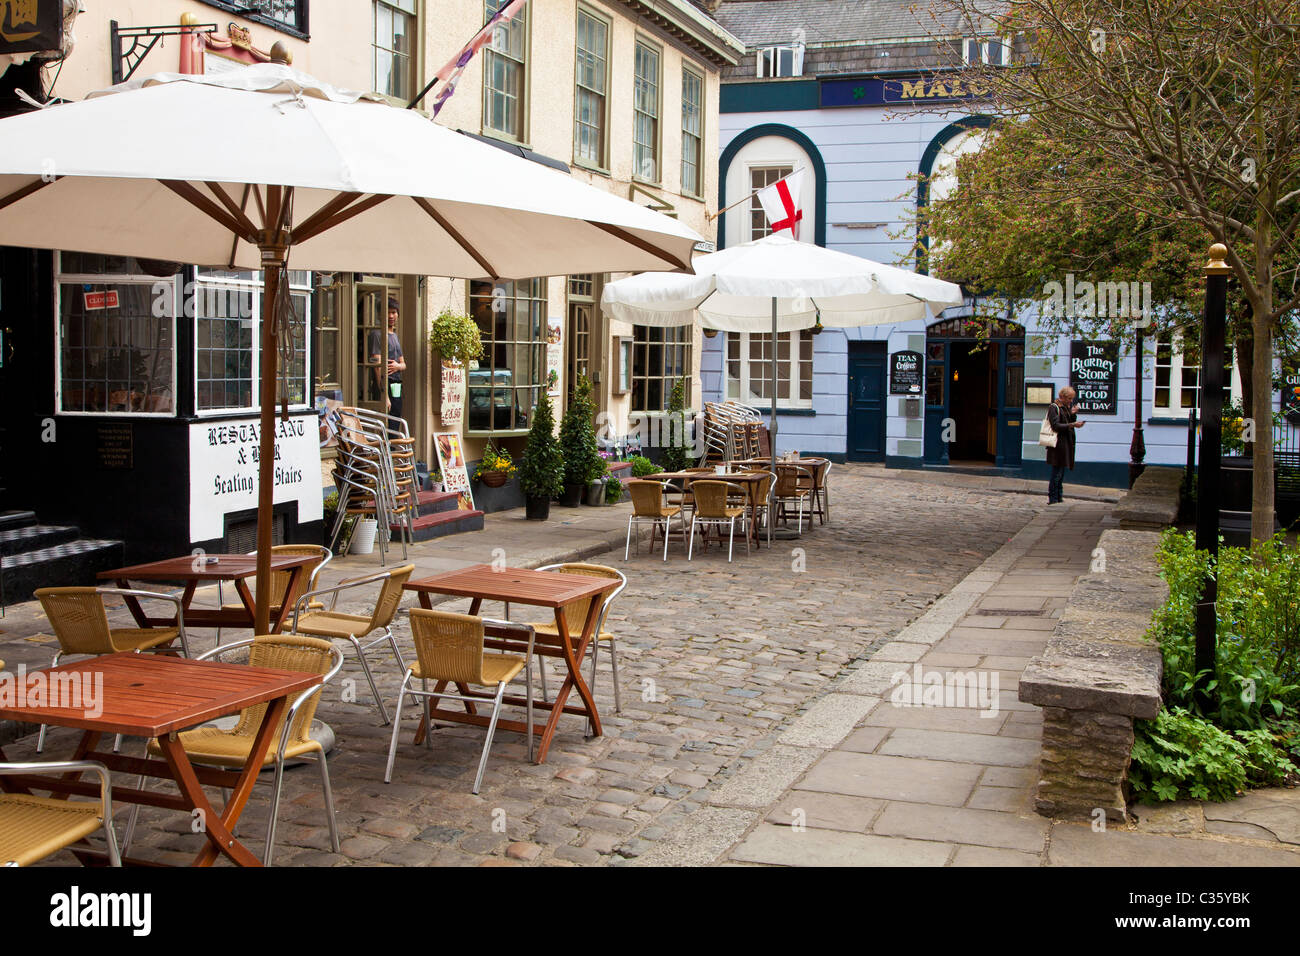 Tables and chairs outside restaurants in Church Street, a small cobbled street in Windsor, Berkshire, England, UK - Stock Image